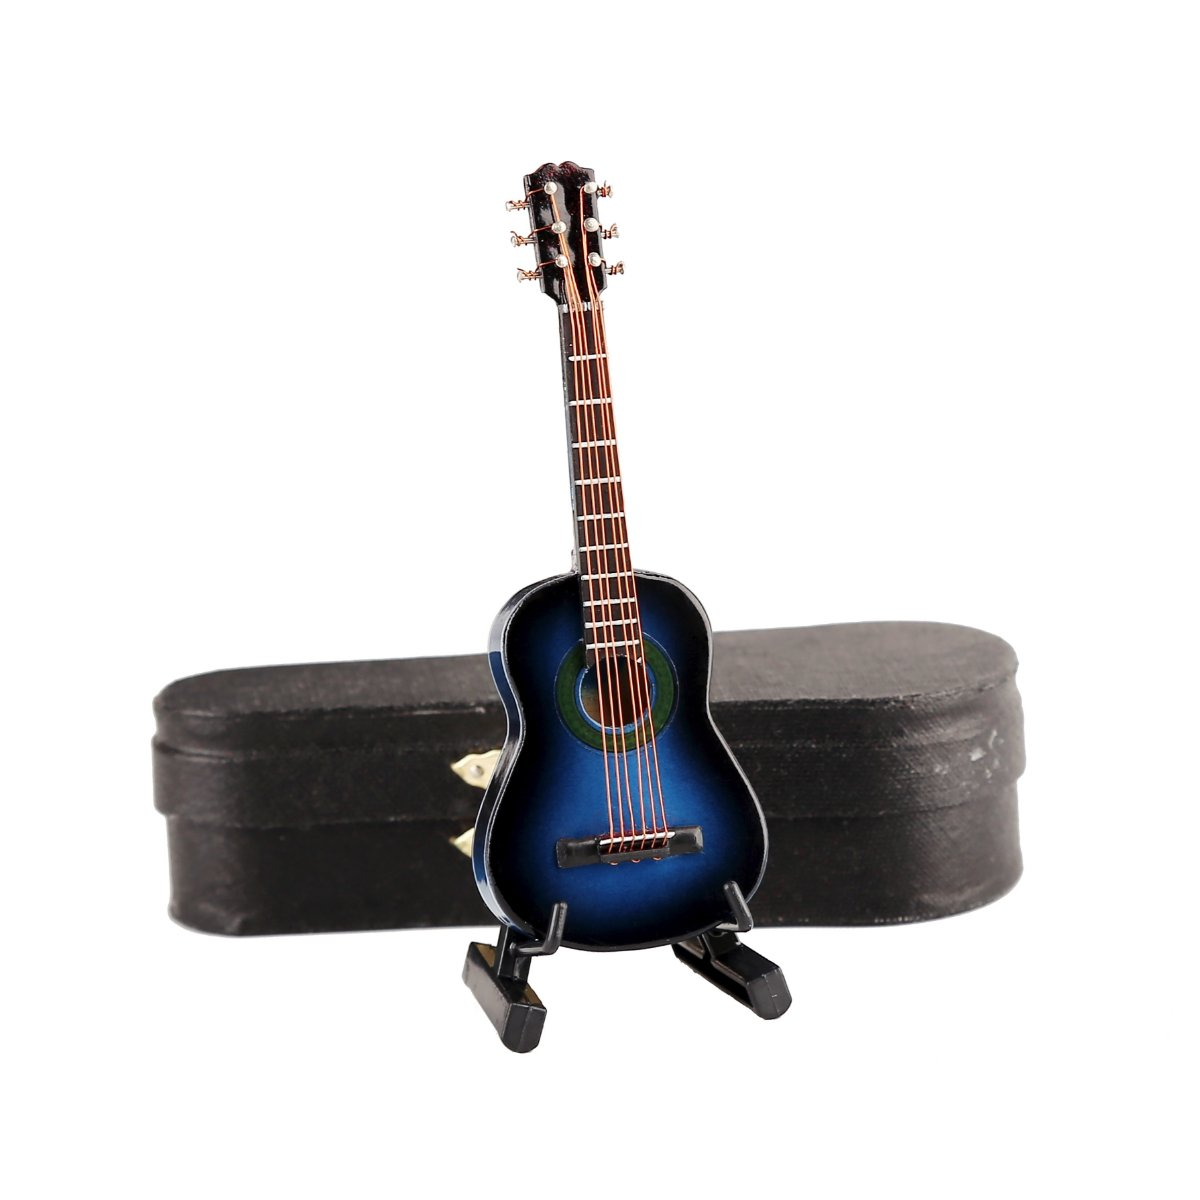 Seawoo Wooden Miniature Guitar with Stand and Case Mini Musical Instrument Replica Collectible Miniature Dollhouse Model Home decoration (Classic Guitar:Blue, 3.93''x1.42''x0.56'')